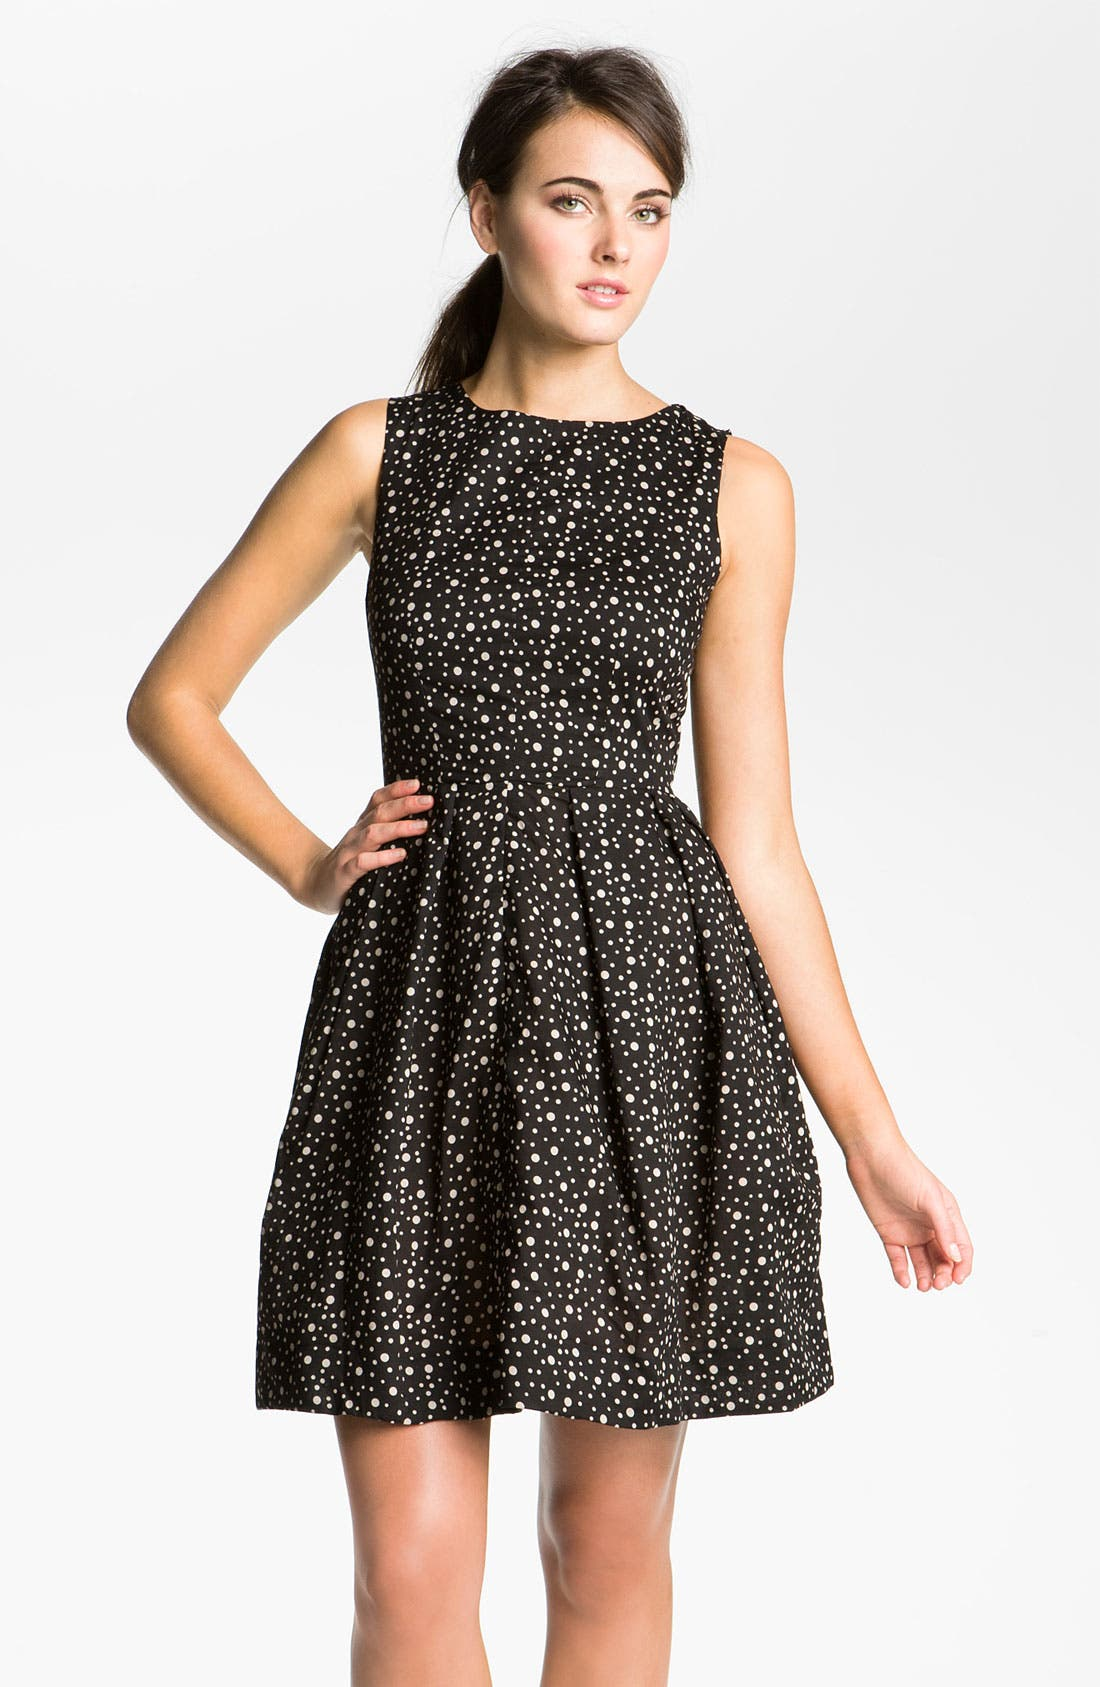 Main Image - Taylor Dresses Polka Dot Cotton Fit & Flare Dress